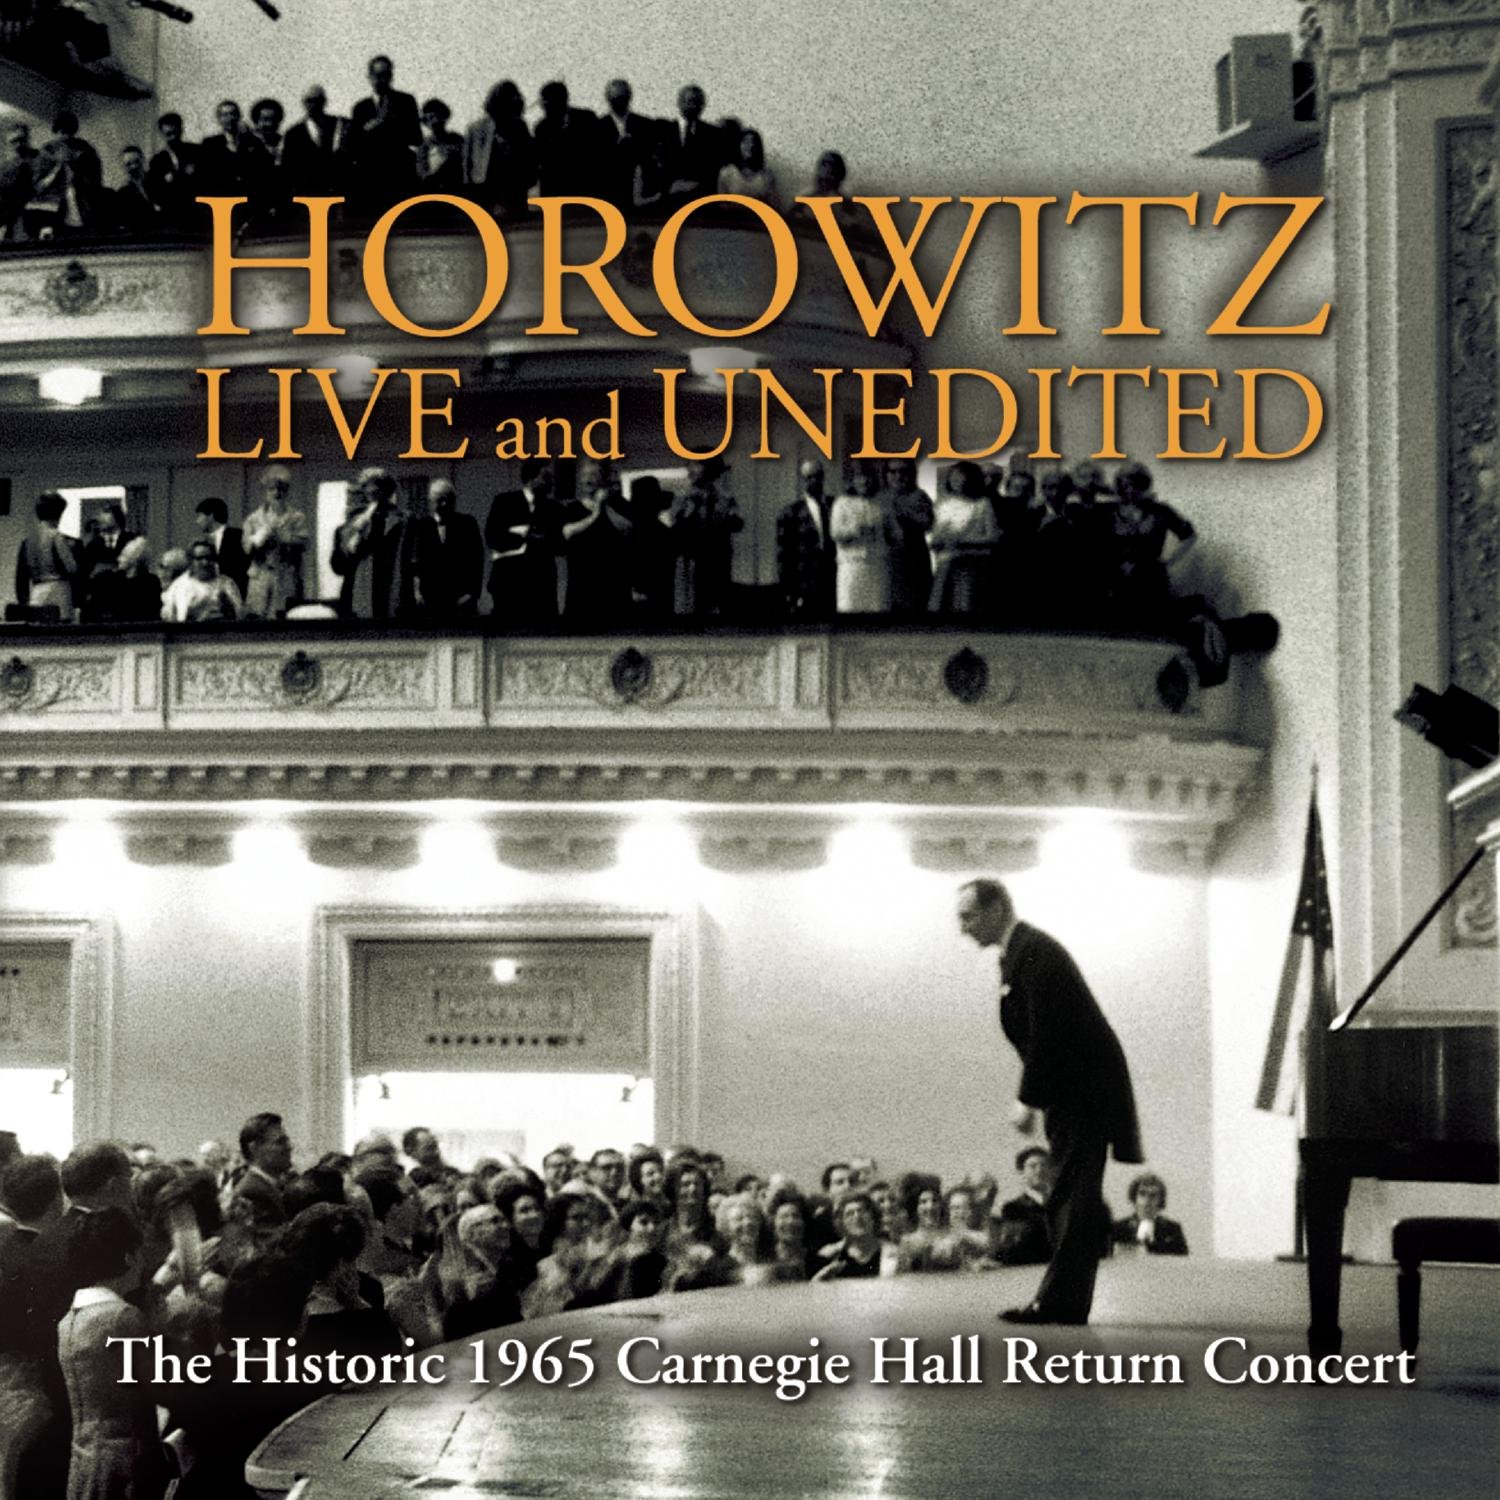 Historic Horowitz - Live and Unedited - The Legendary 1965 Carnegie Hall Return Concert by Sony Classical